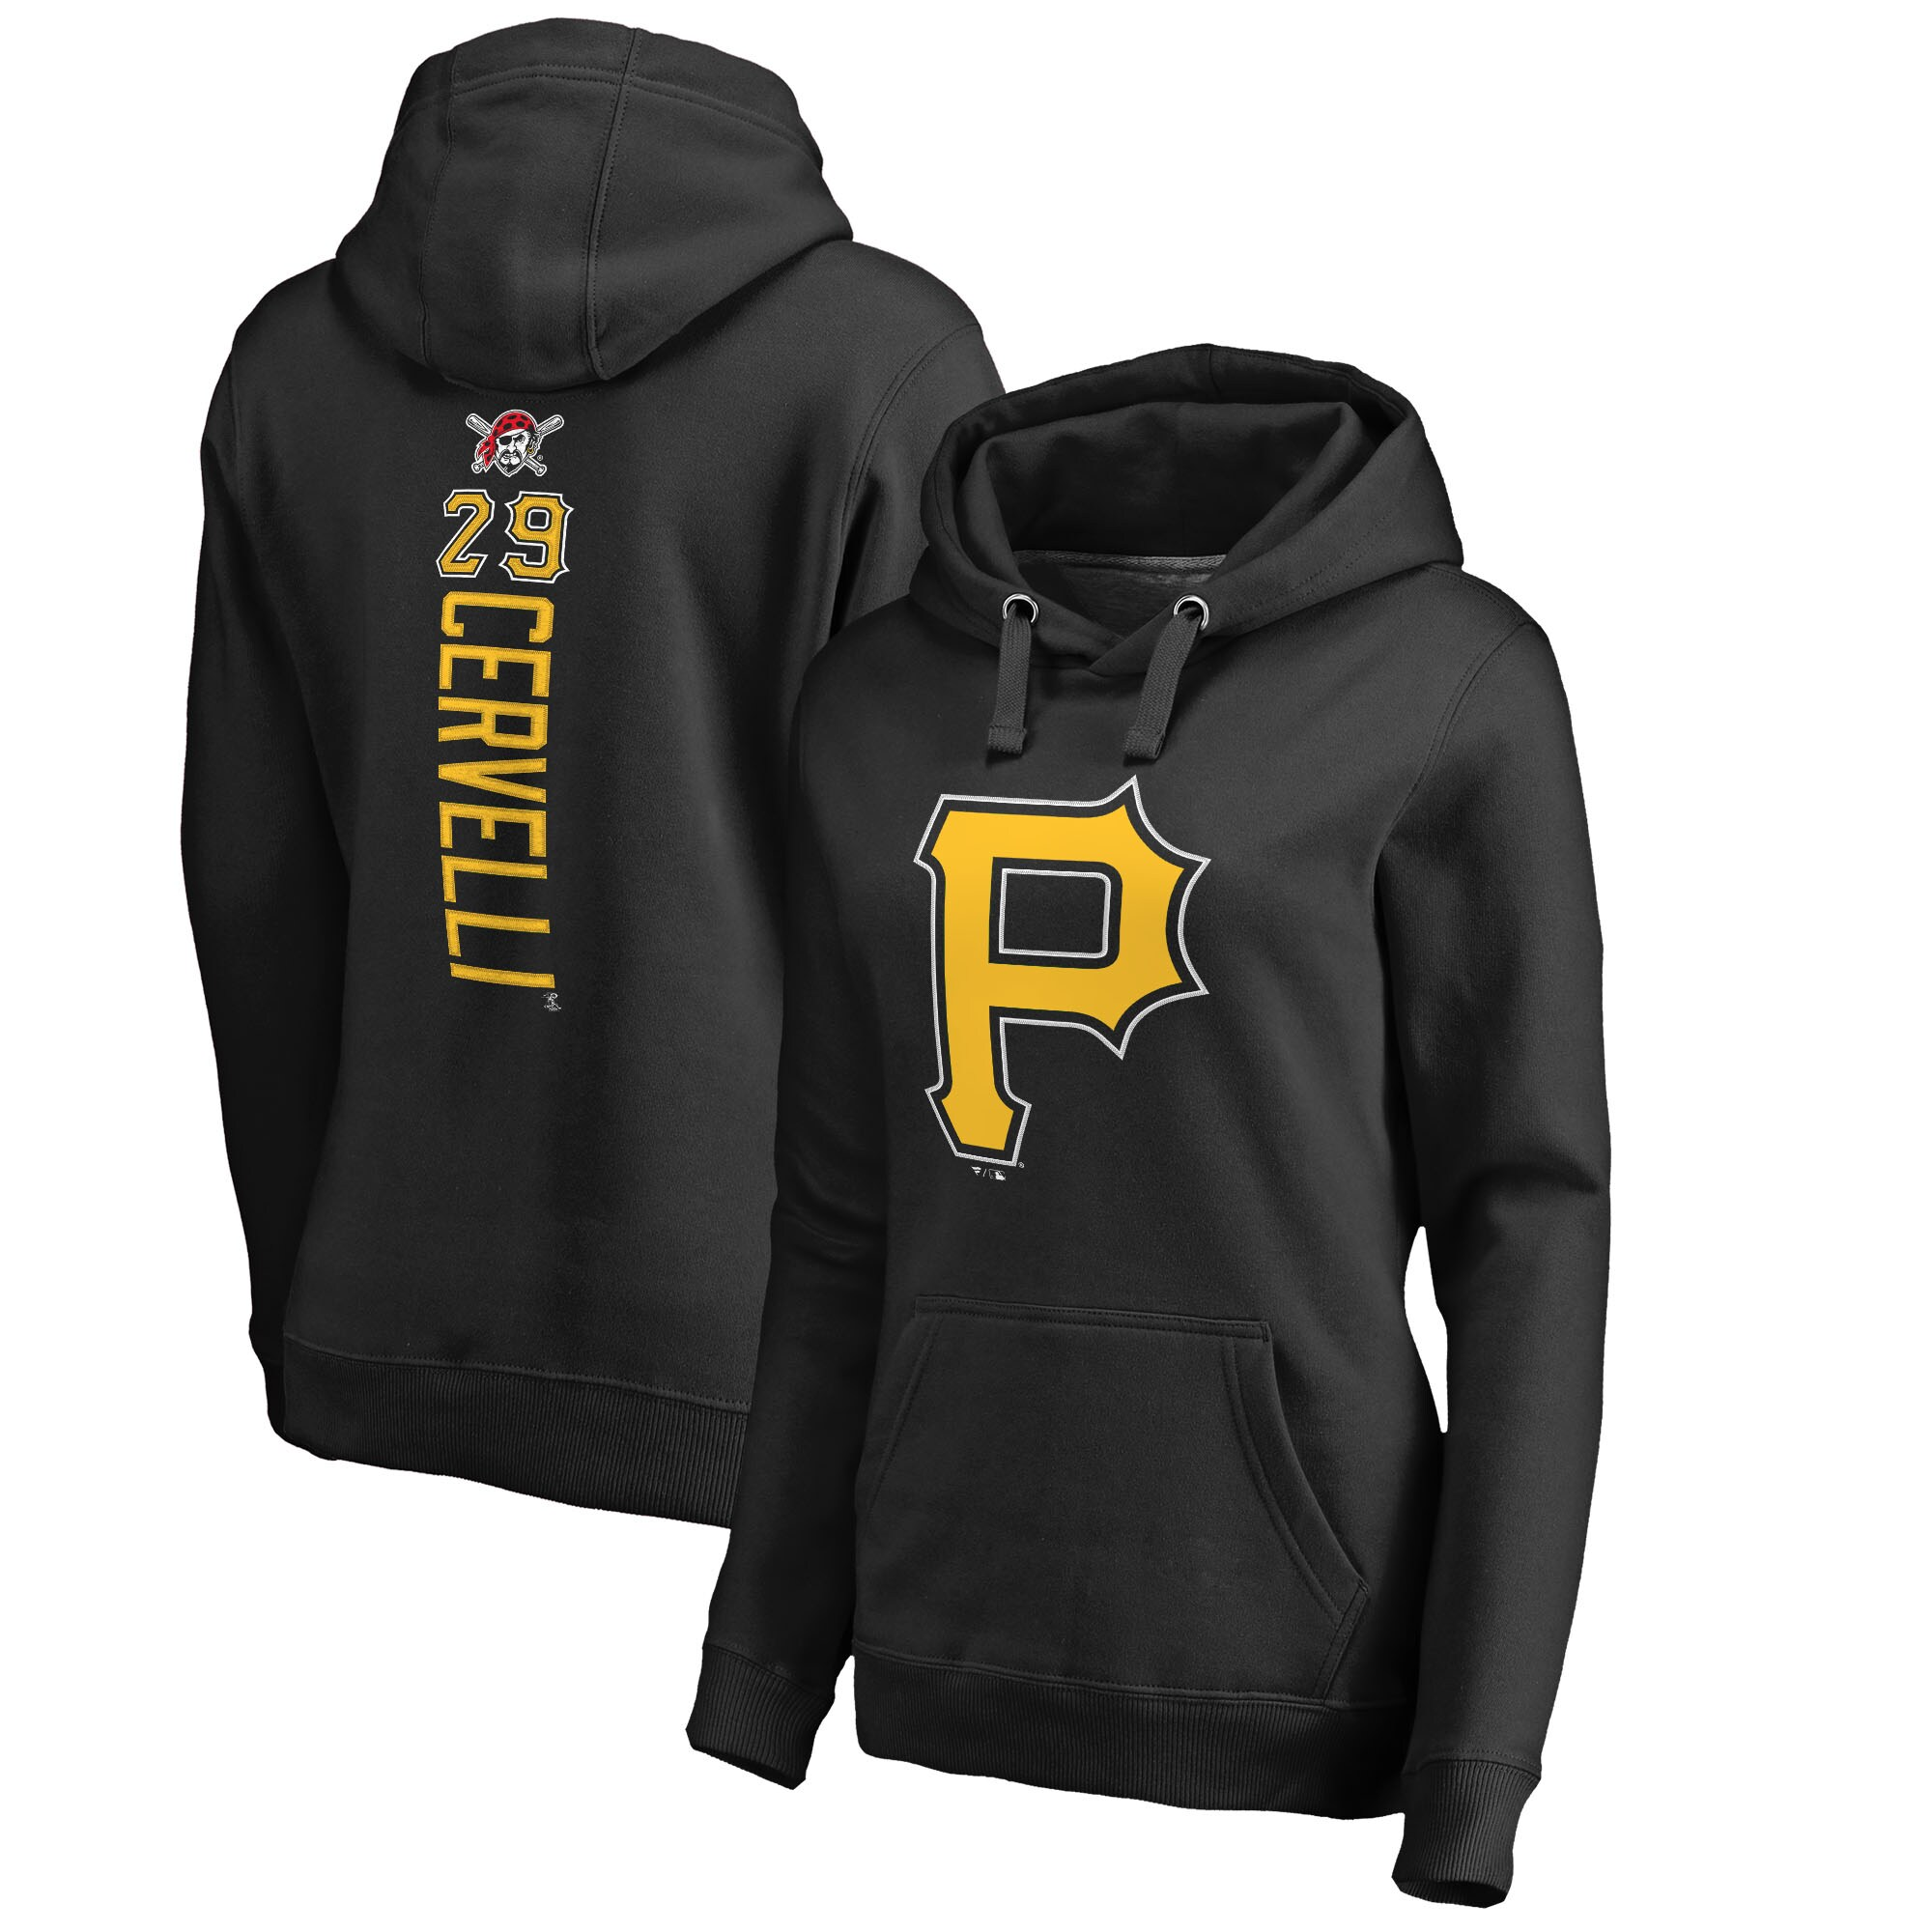 Francisco Cervelli Pittsburgh Pirates Fanatics Branded Women's Backer Pullover Hoodie - Black